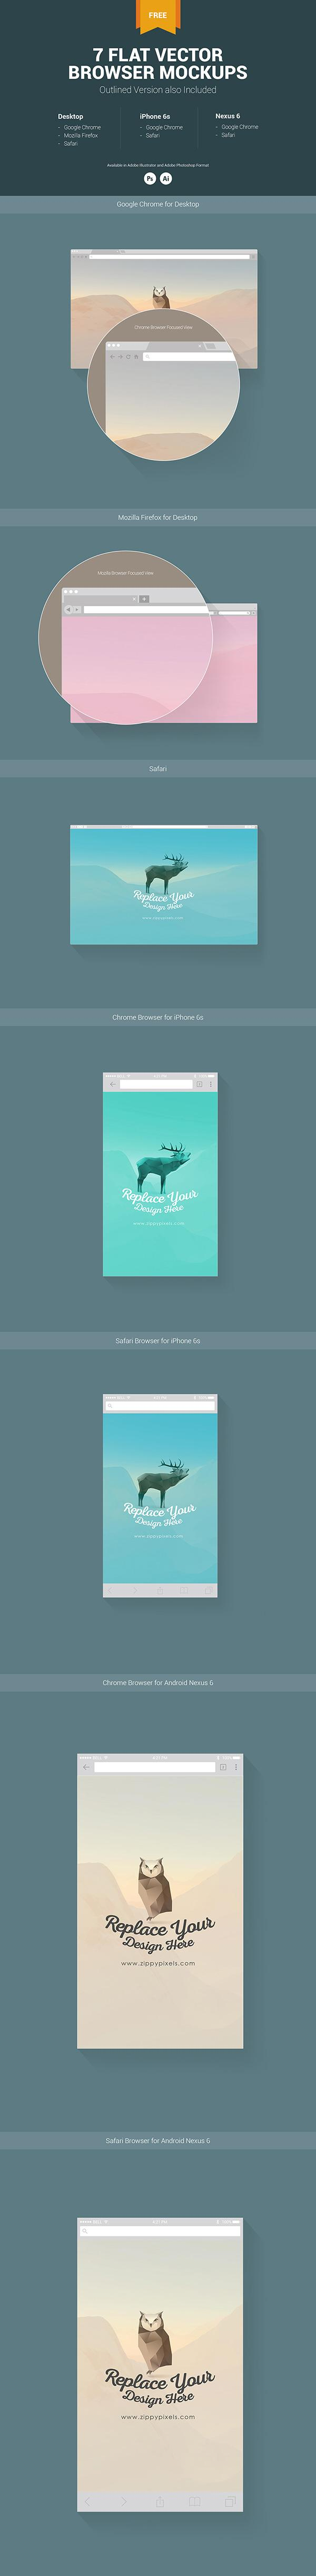 7_free_web_mobile_browser_mockups